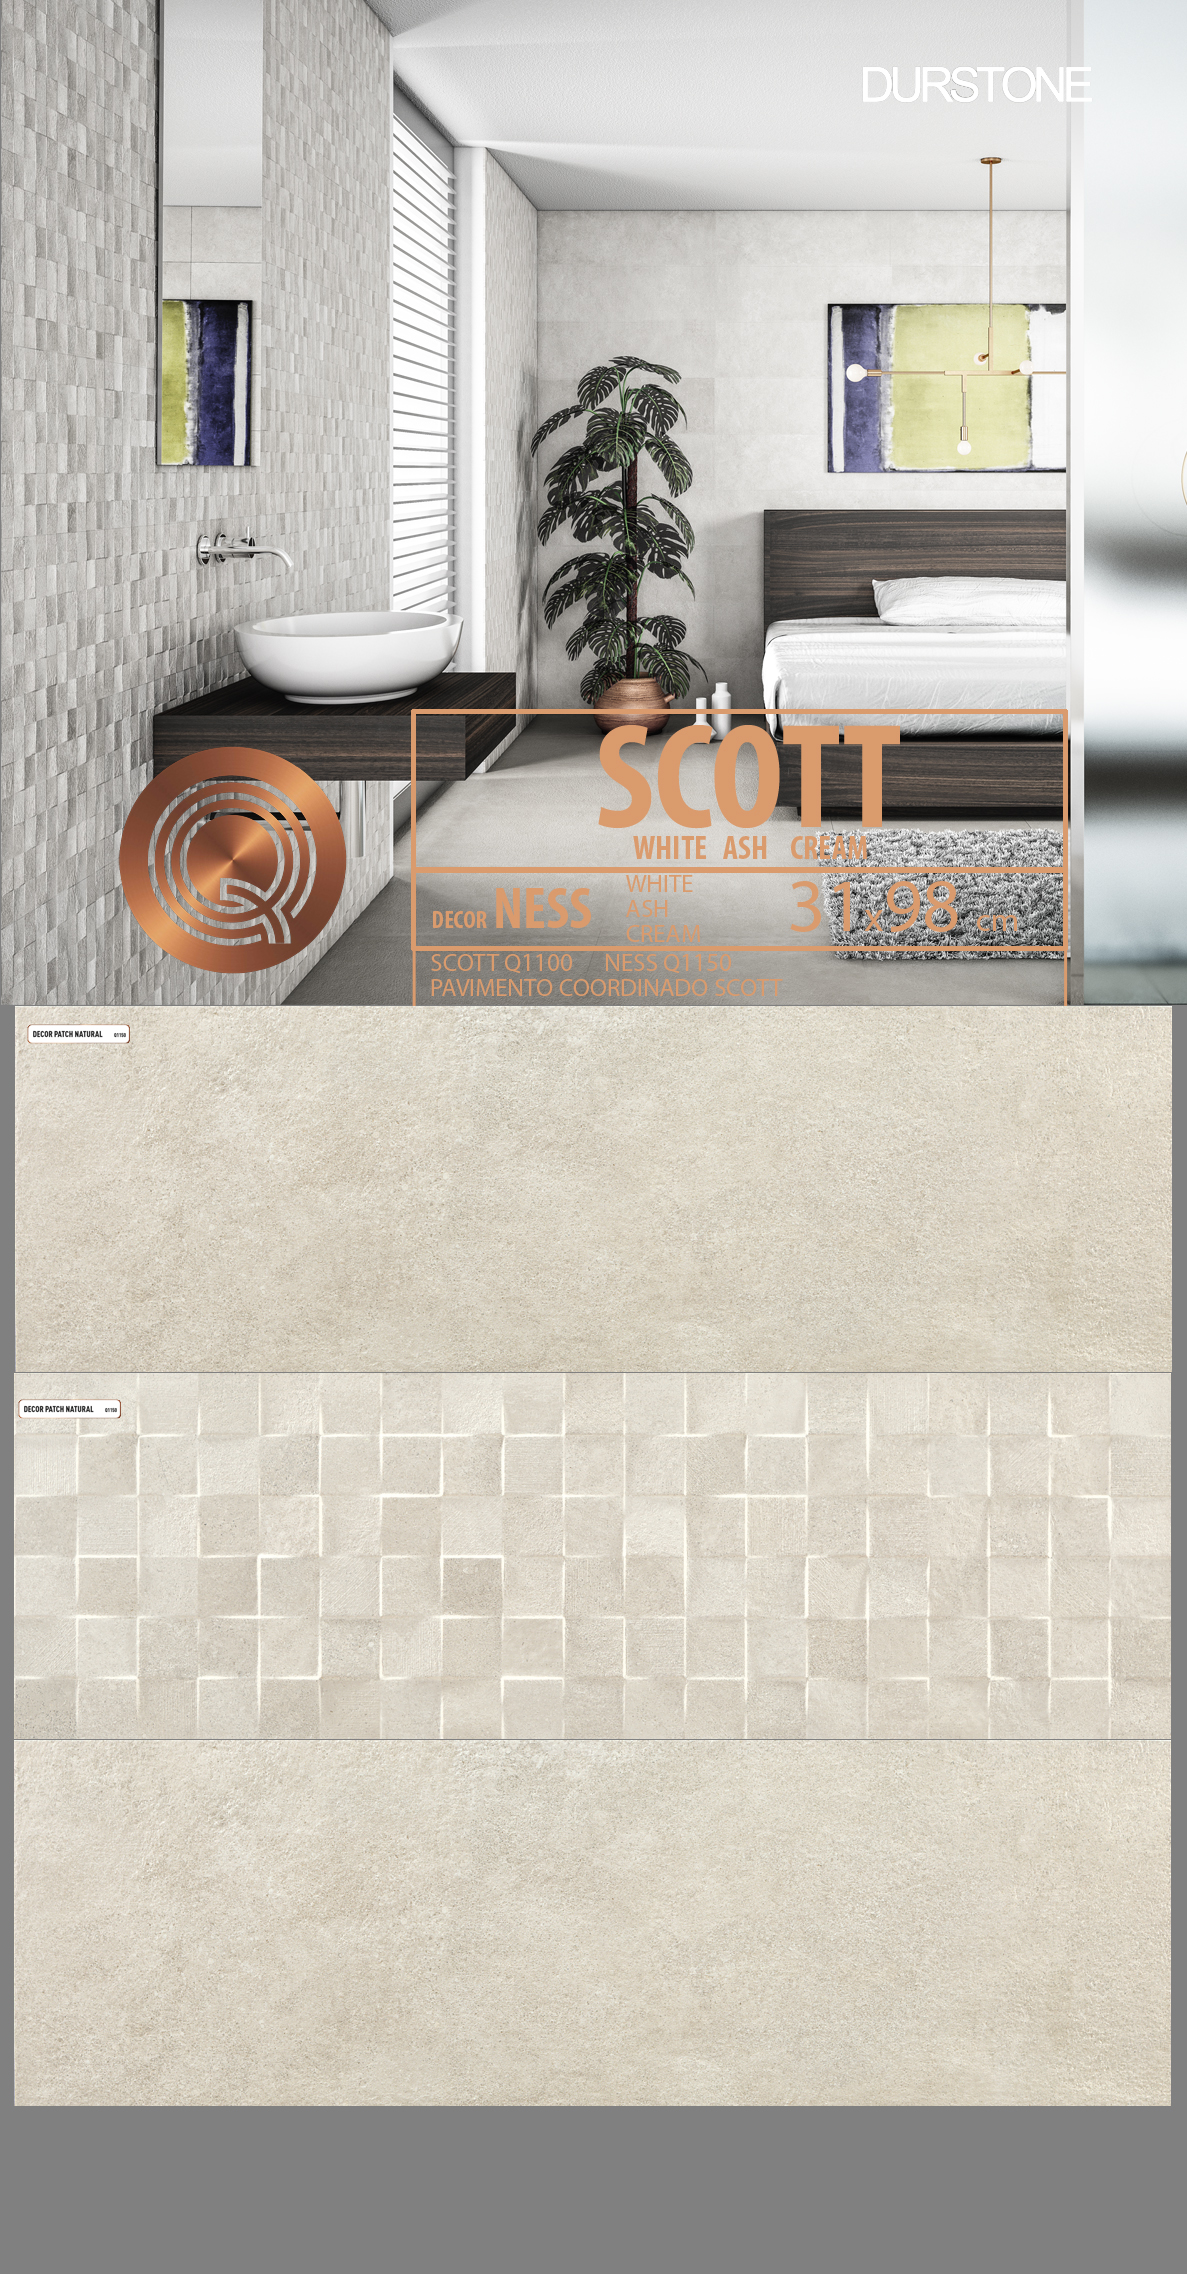 5251 RVM PANEL MIX SCOTT NESS CREAM Cod. 5251